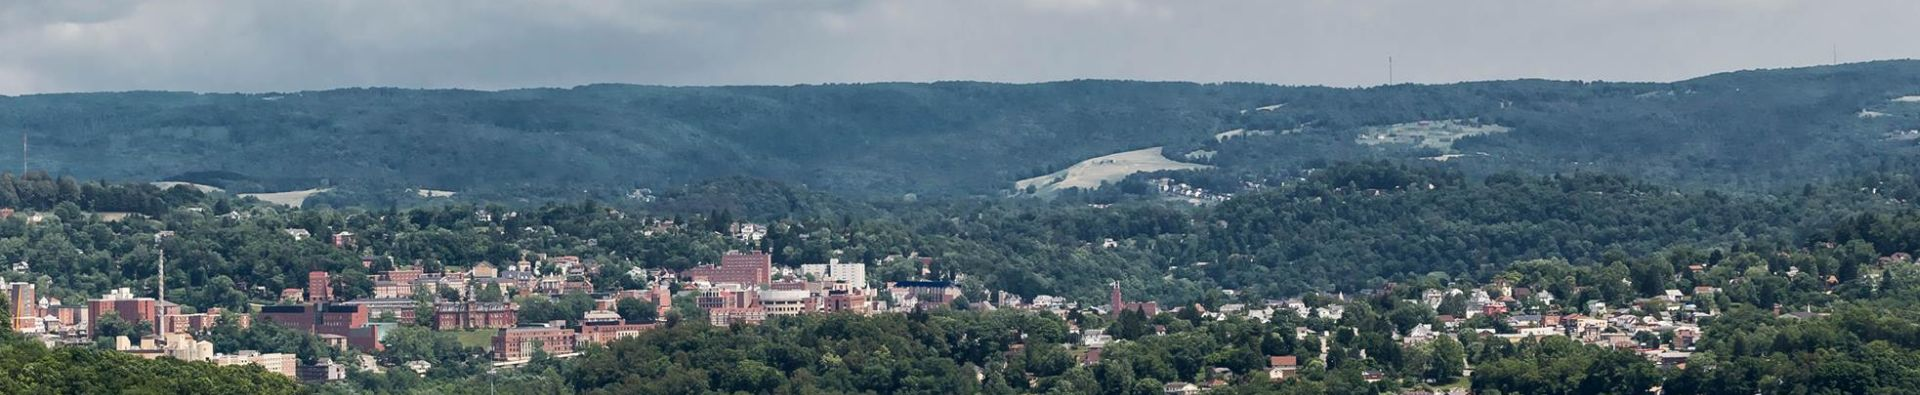 Overlooking Morgantown - Photo Credit: Amy Sine Photography